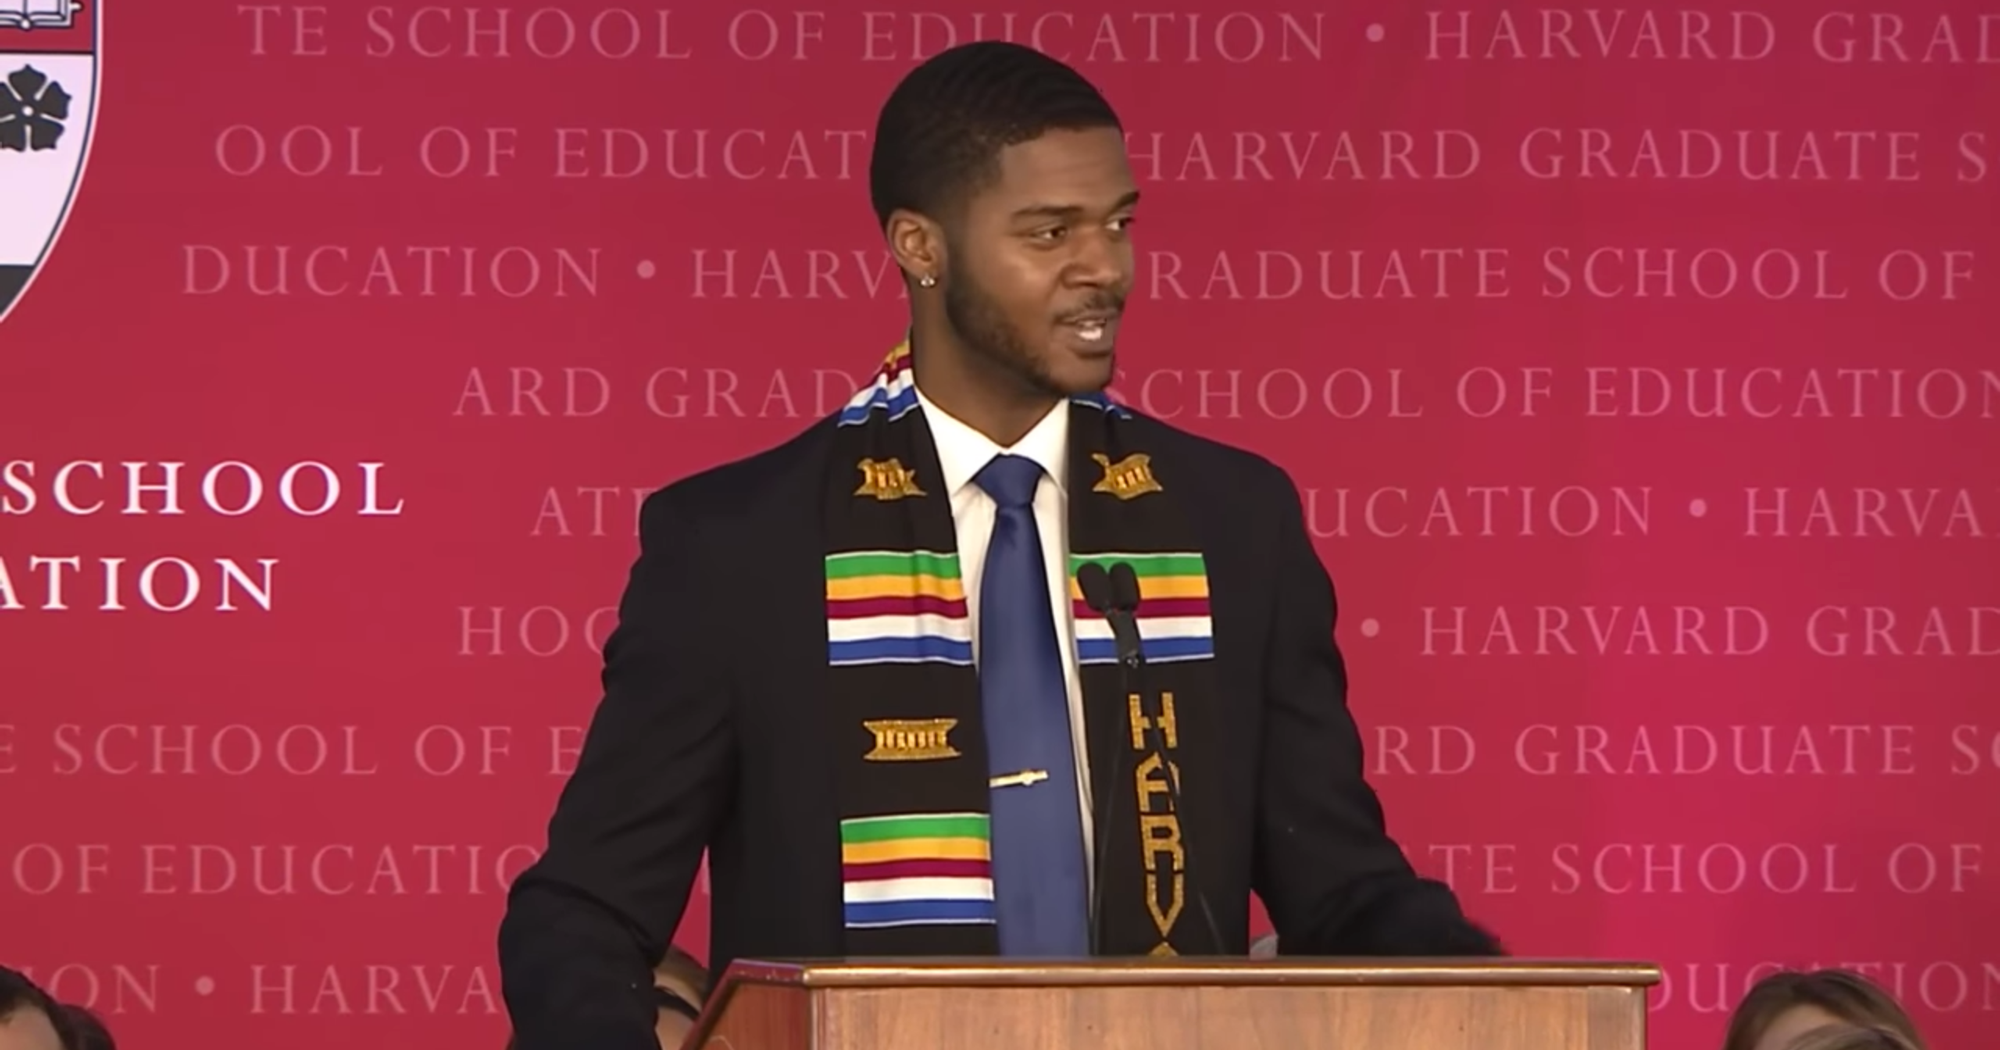 This Harvard Graduation Speech Is Going Viral is part of Graduation speech, Harvard graduate, University graduation, Harvard students, Masters degree in education, School of education - Donovan Livingston, who was receiving his master's degree in education, presented a spoken word poem during his graduation speech at Harvard